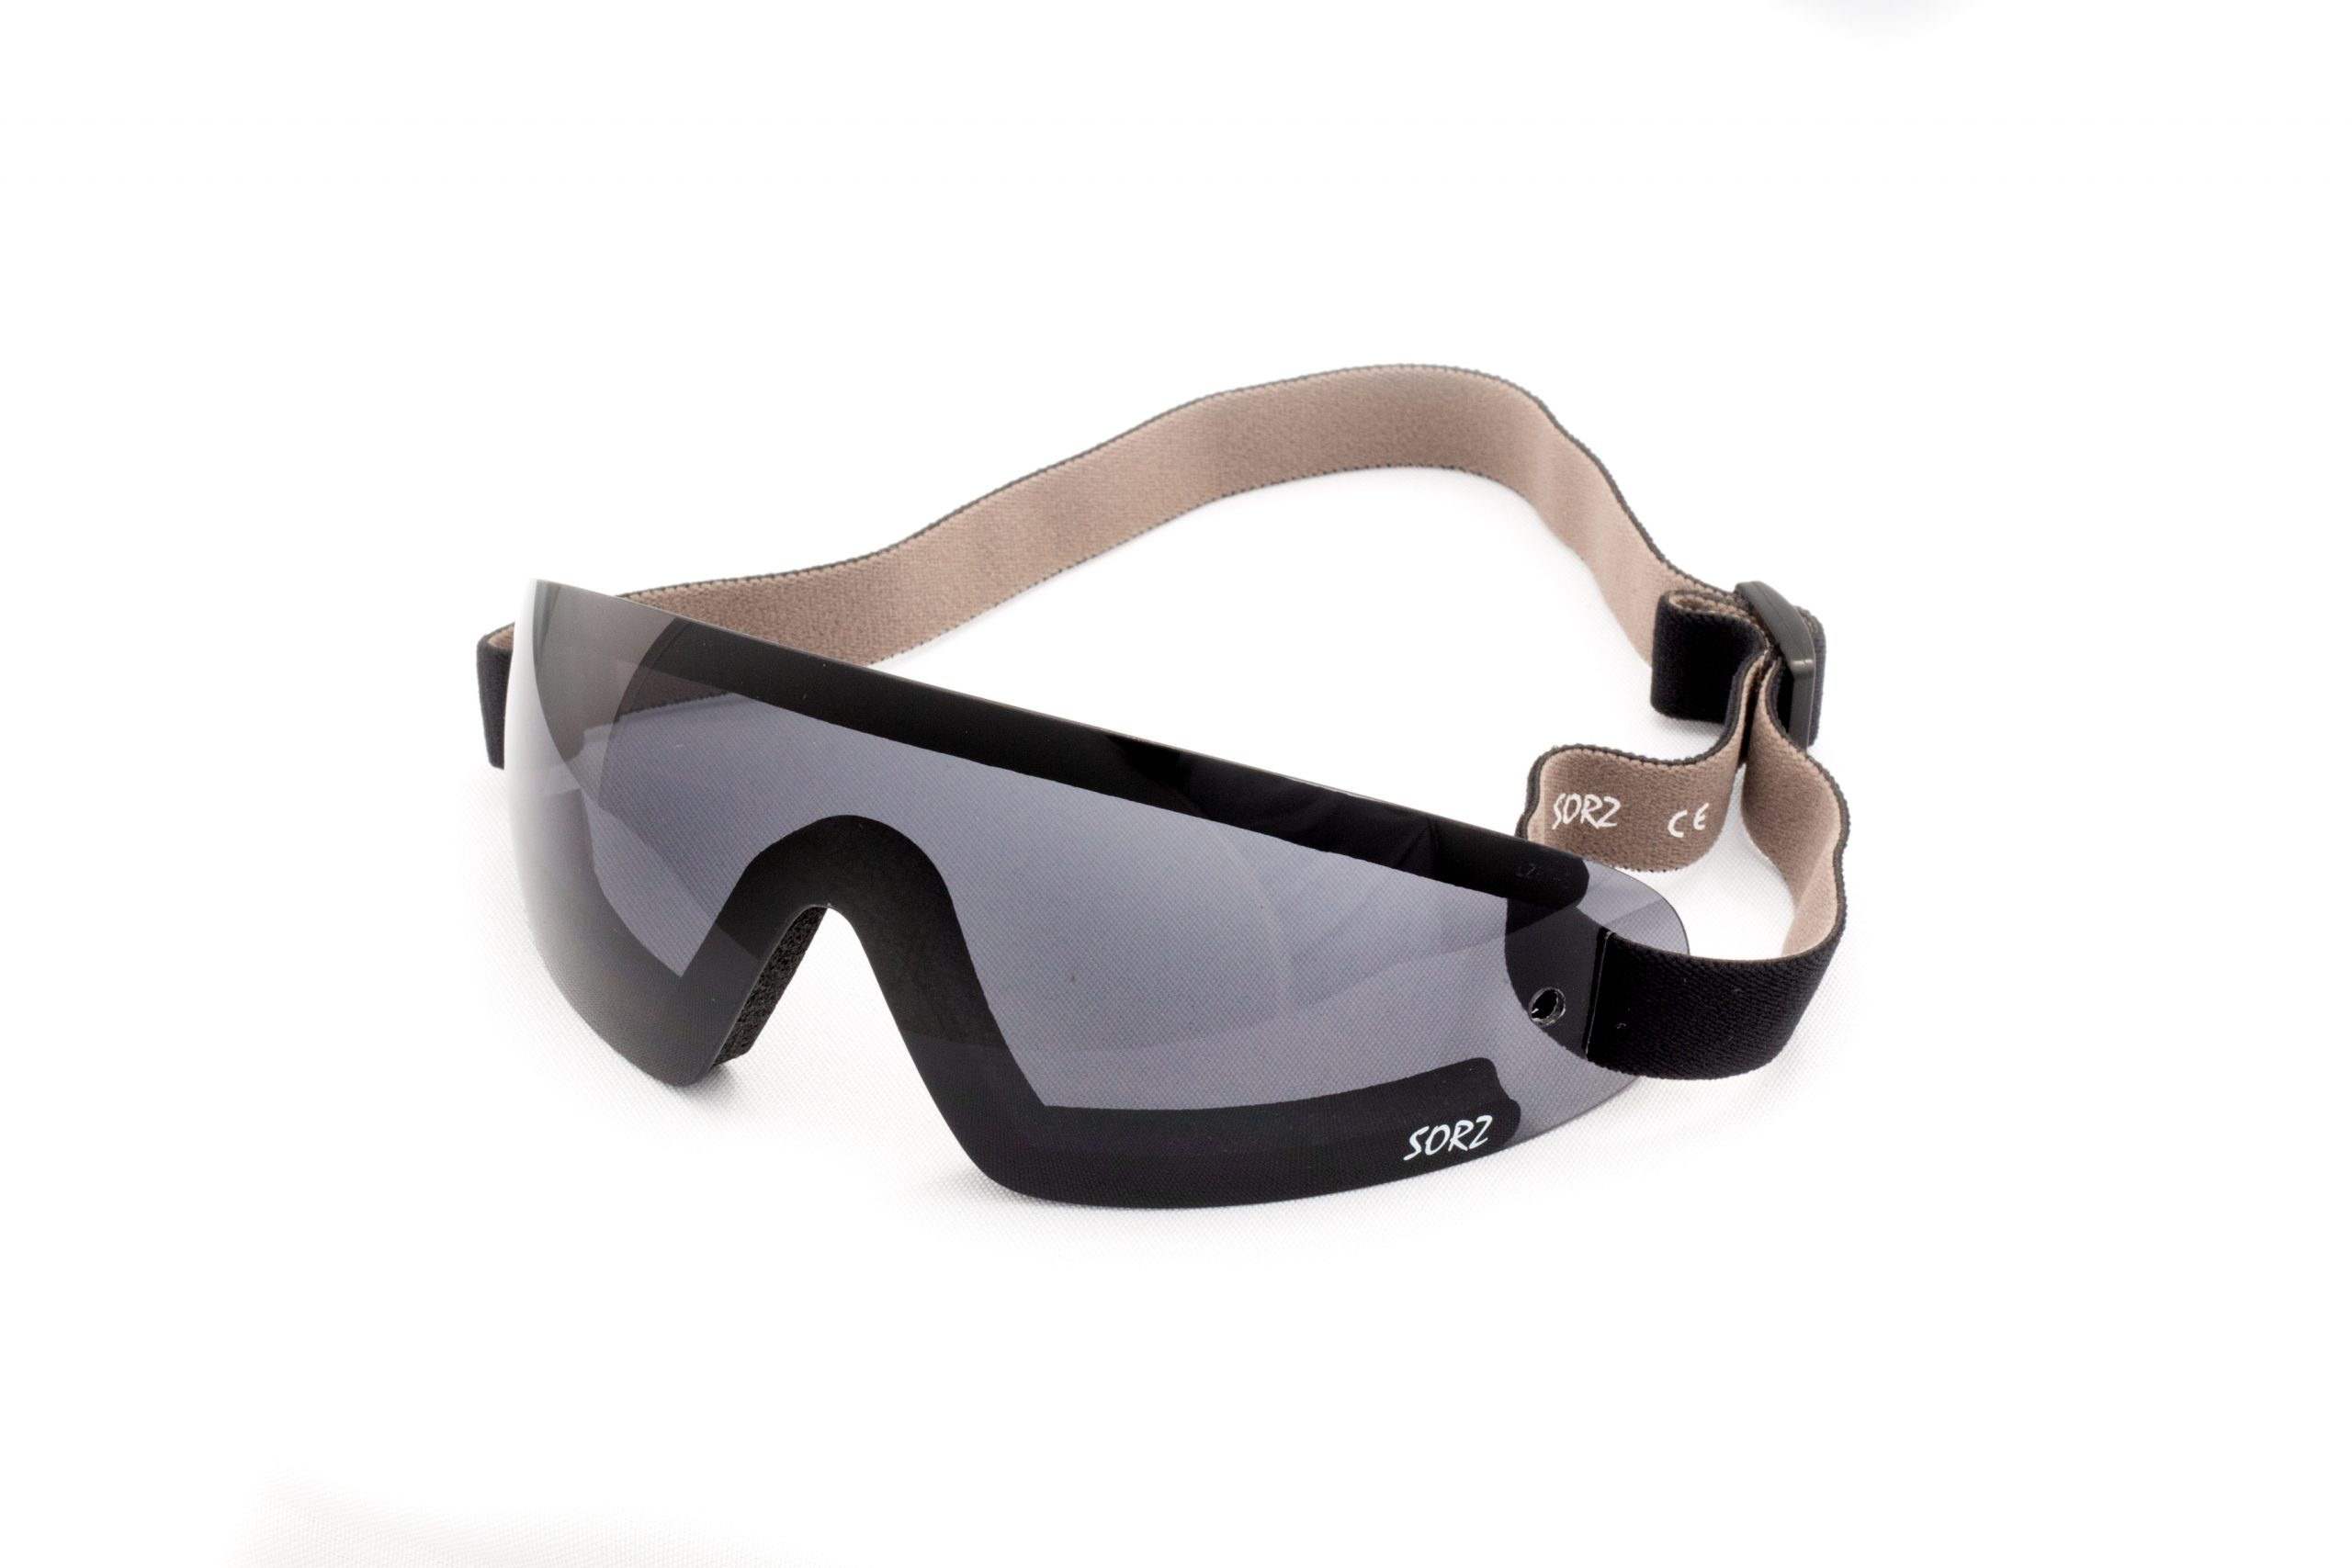 05-02 - SORZ Smoke Skydiving Goggle with Smoke Anti-Fog Lenses in Rimless Goggles with Foam Windstops